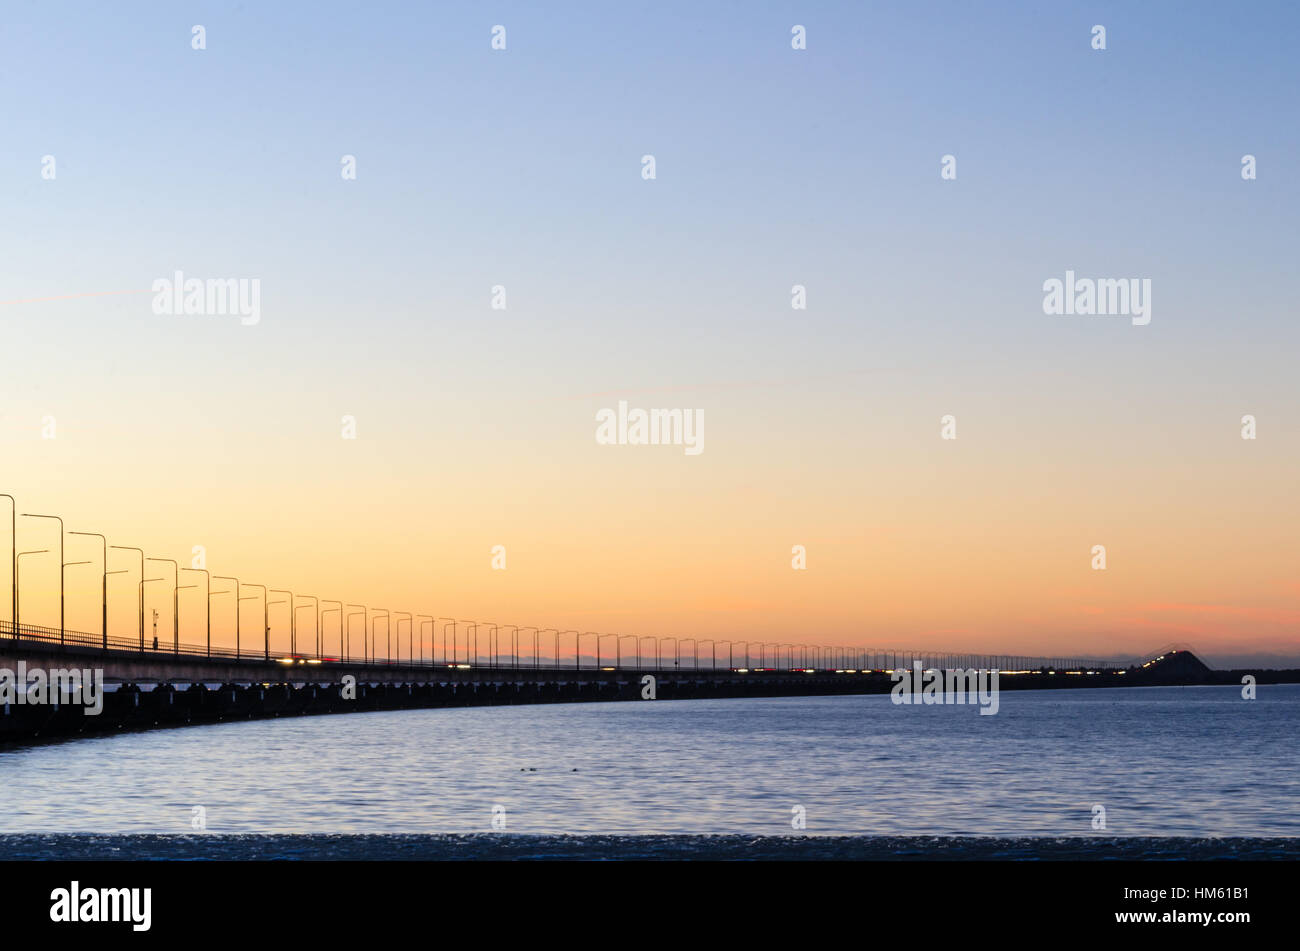 Twilight by the Oland Bridge, connecting the island Oland with mainland Sweden Stock Photo